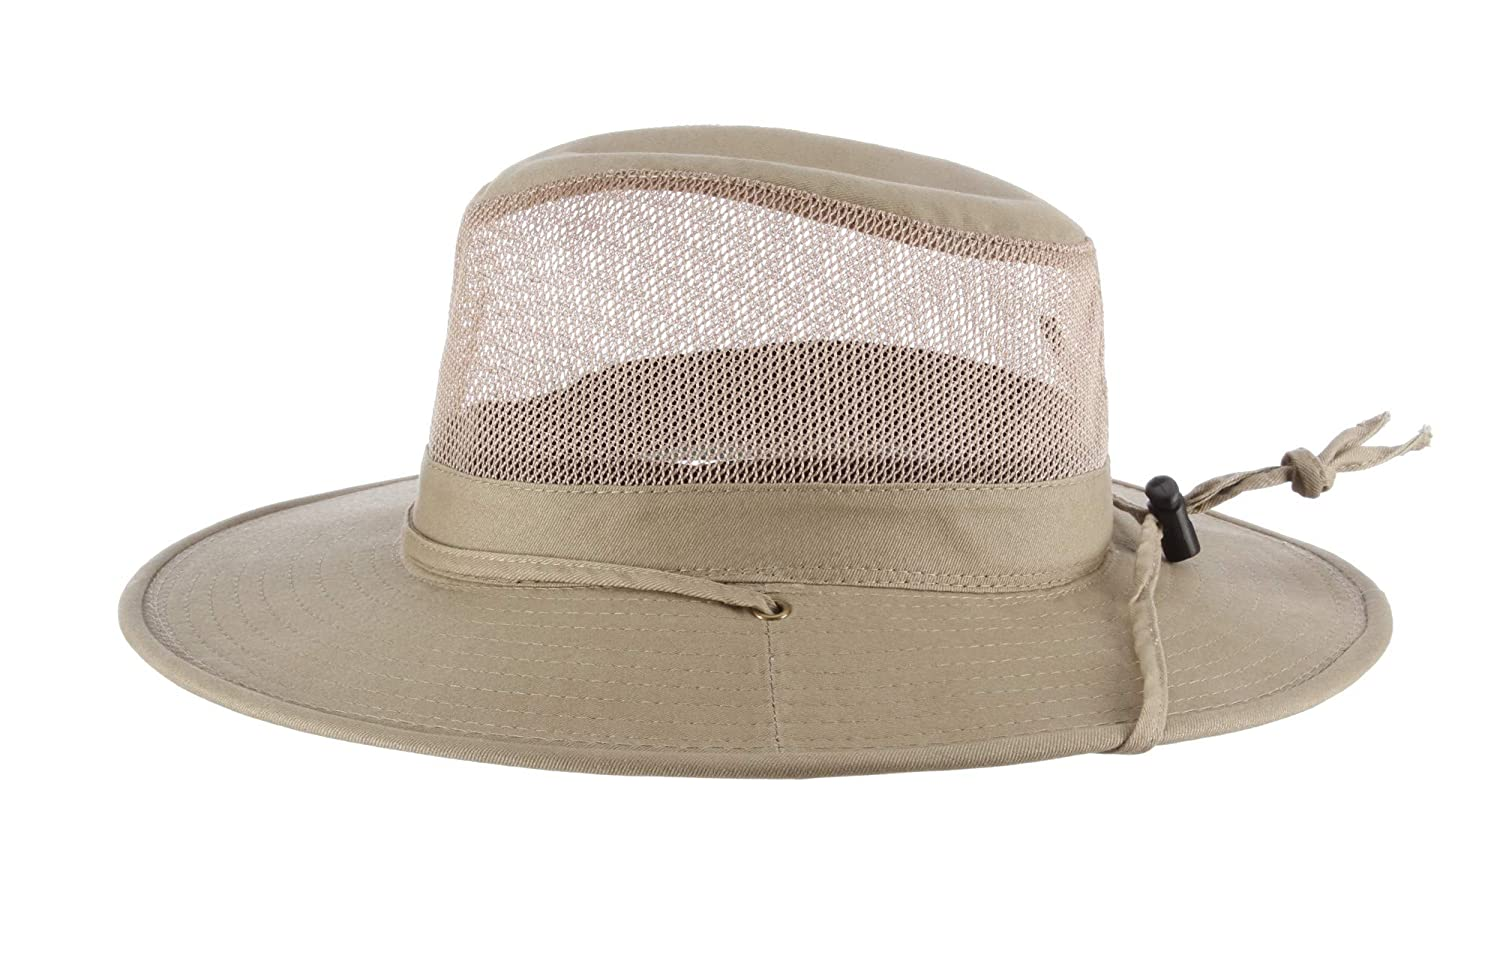 0ea0258ffaf85 Dorfman Pacific DPC Outdoors Solarweave Treated Cotton Hat Beige   Amazon.in  Clothing   Accessories